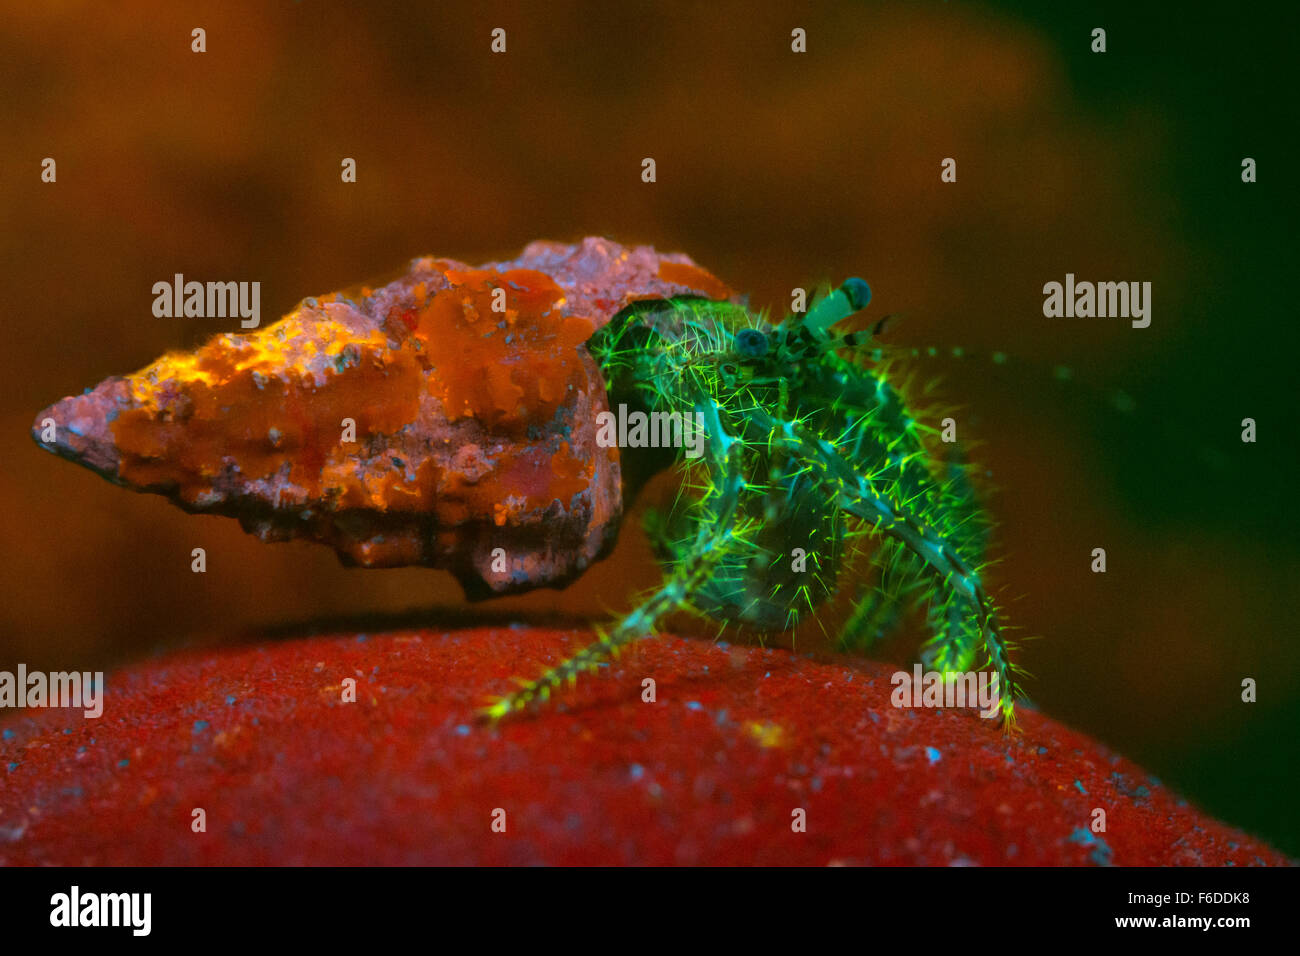 Fluorescent Long-armed Hermit Crab, Pagurus anachoretus, Piran, Slovenia - Stock Image